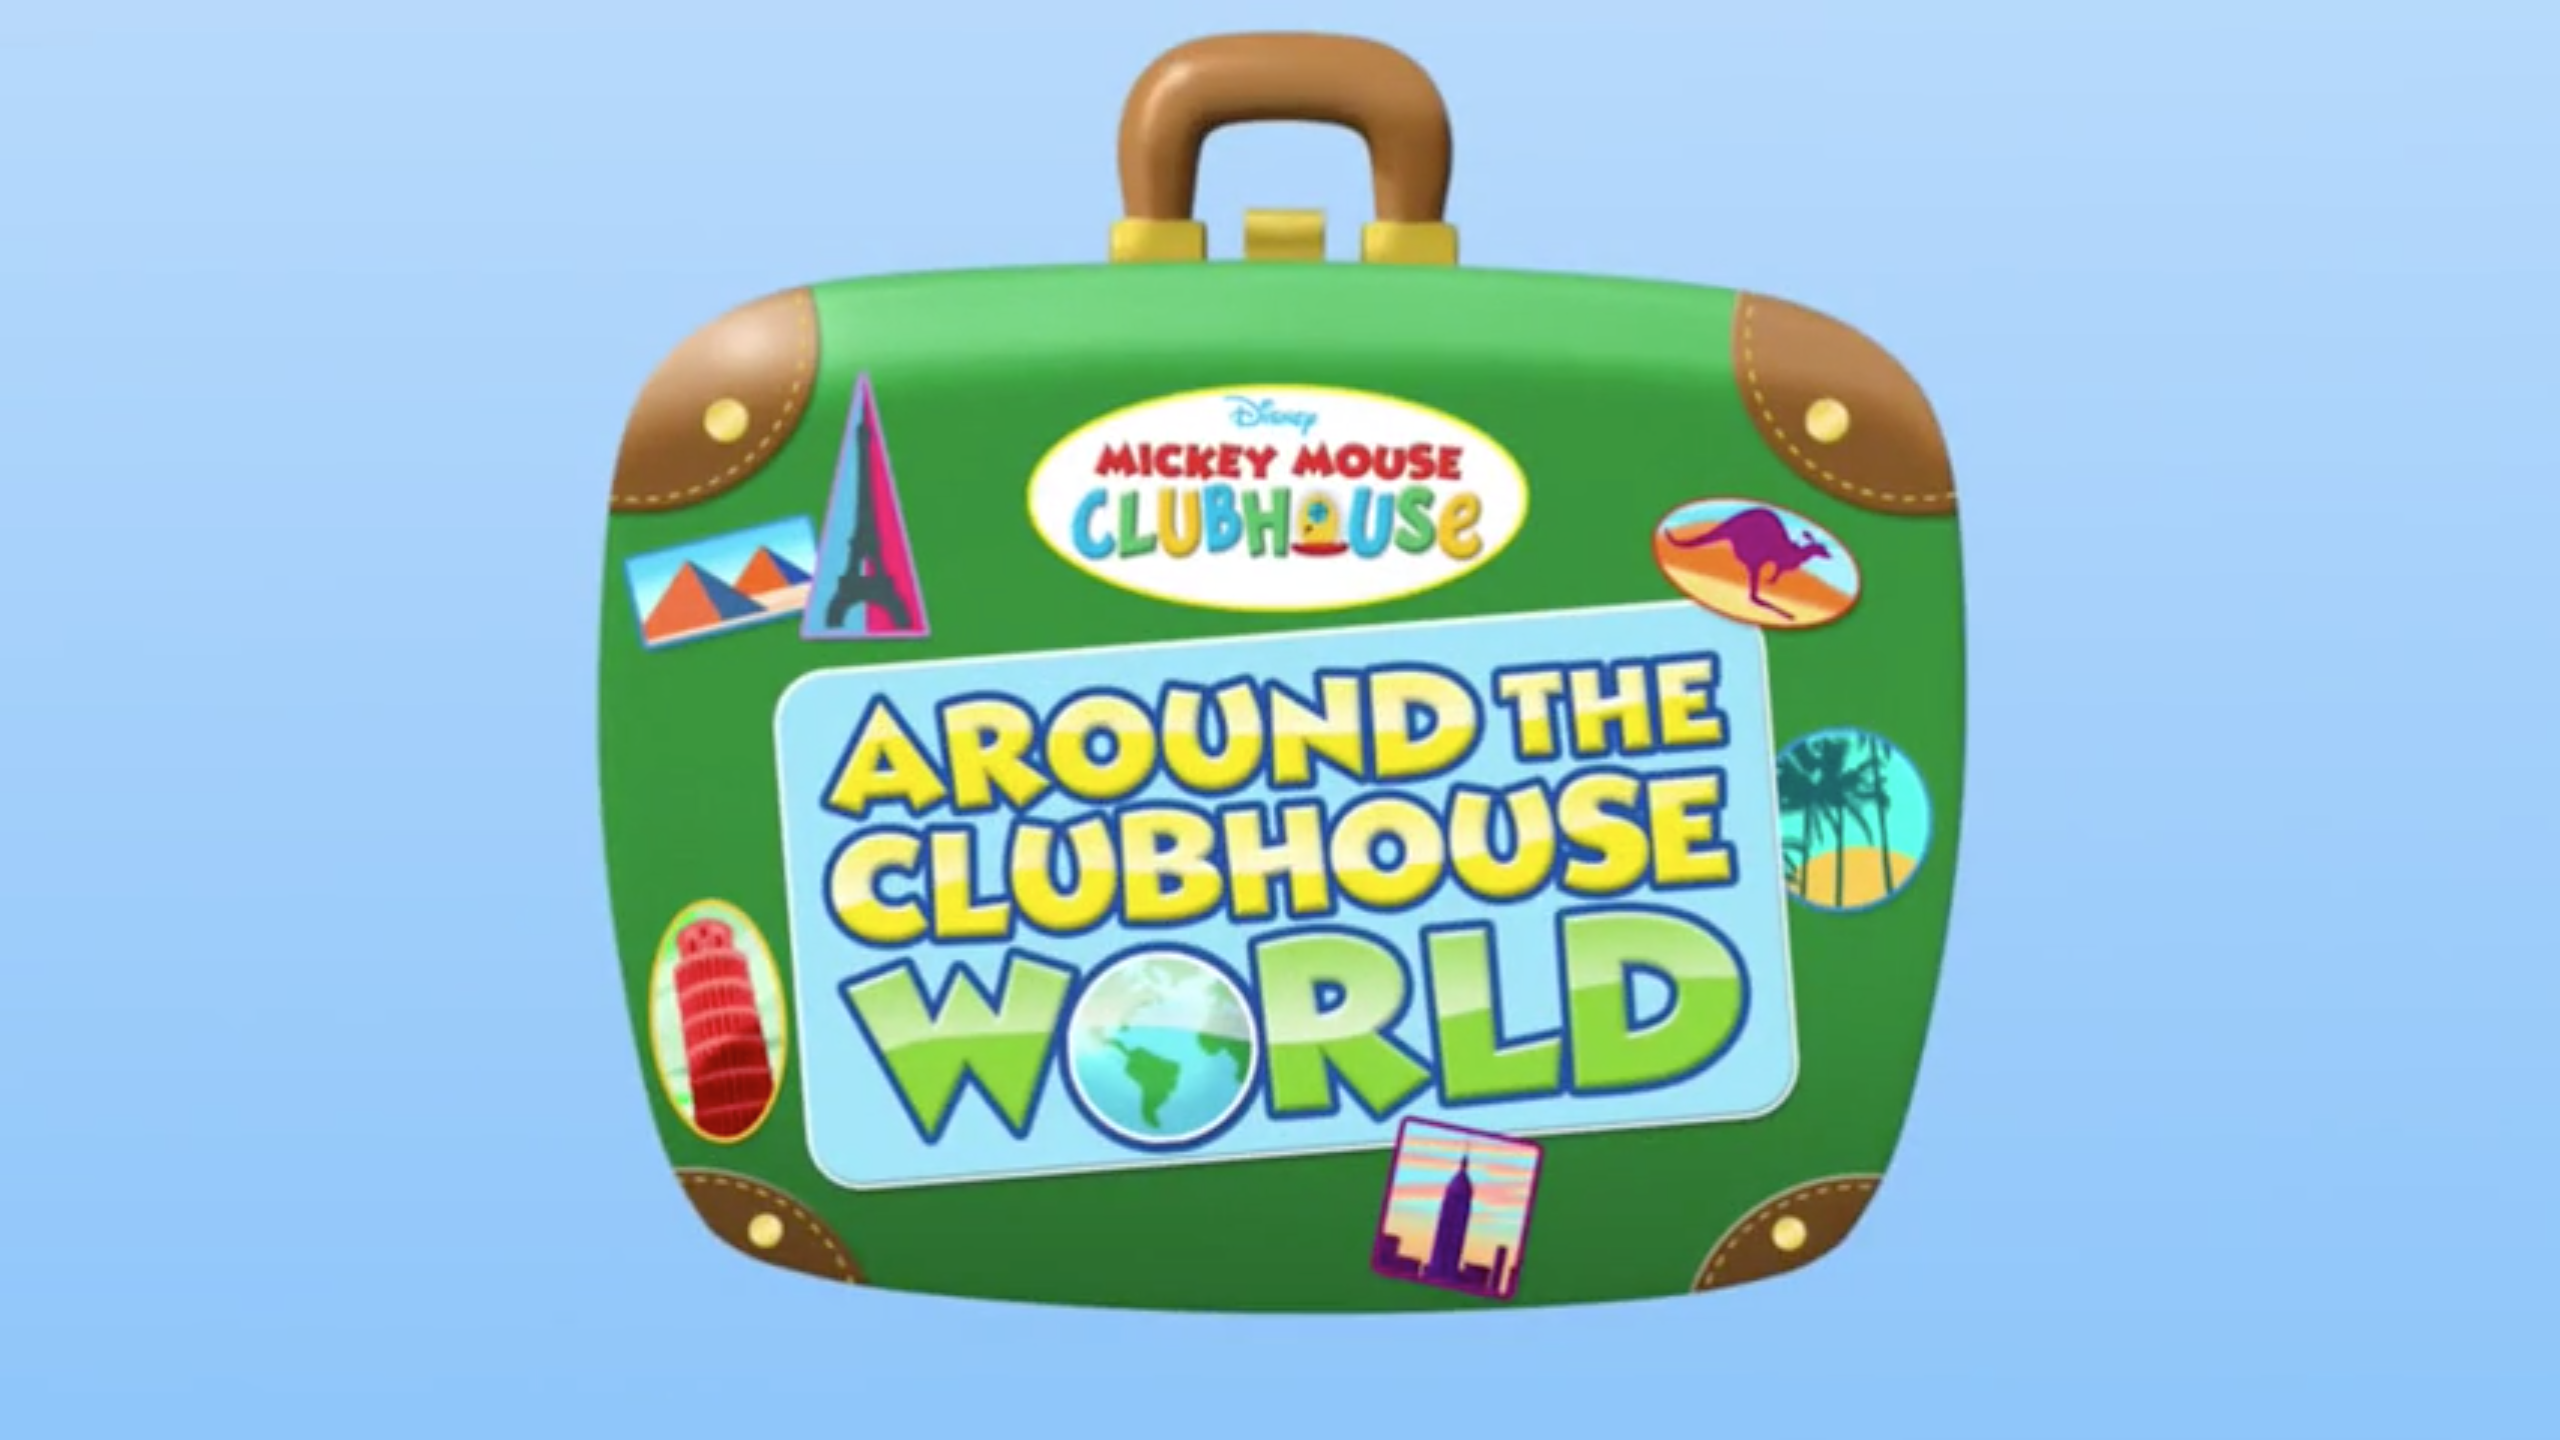 Around the Clubhouse World